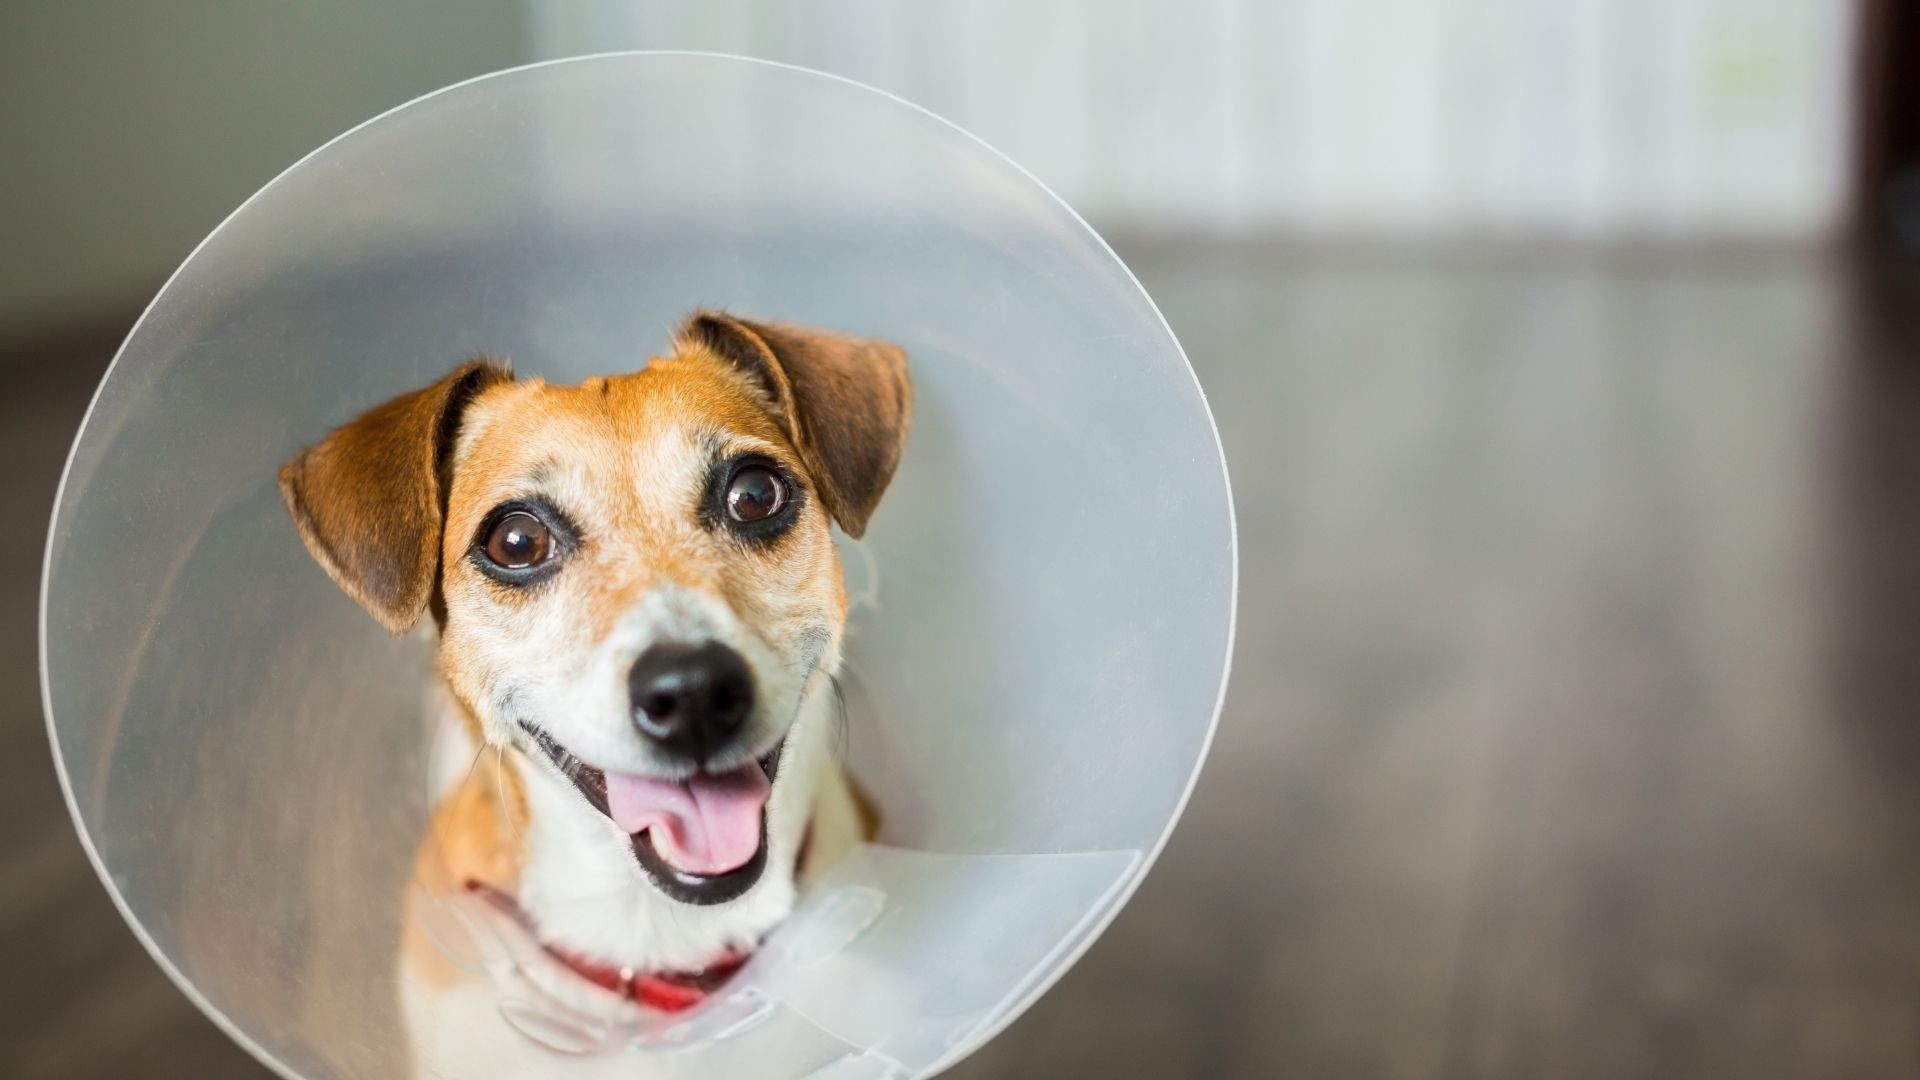 The best way to prevent dog wound licking is generally to put an Elizabethan collar, or e-collar, on the dog. Since the collar...